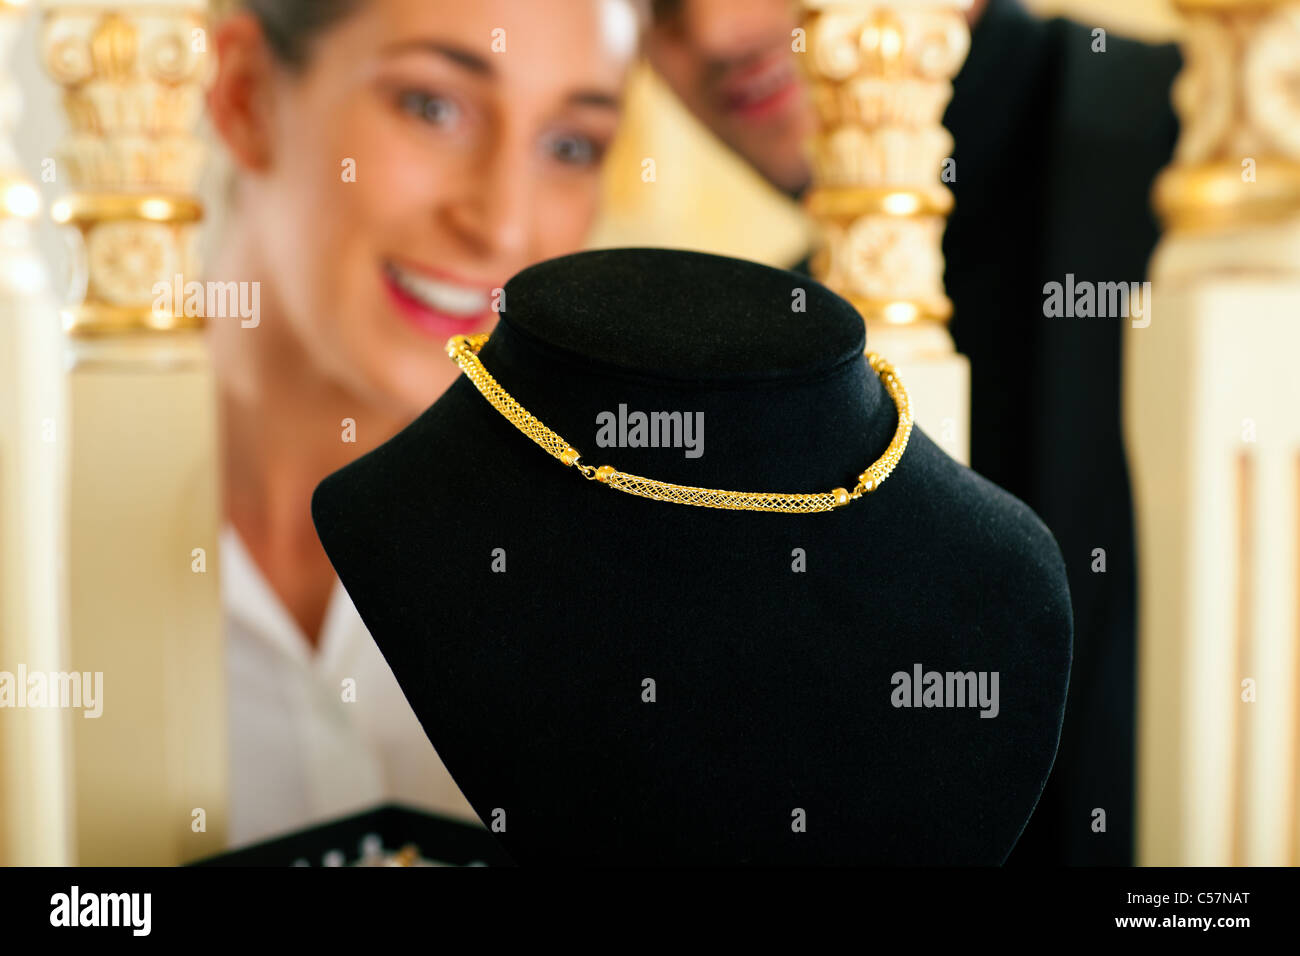 Woman at the jeweller is looking for jewellery - Stock Image